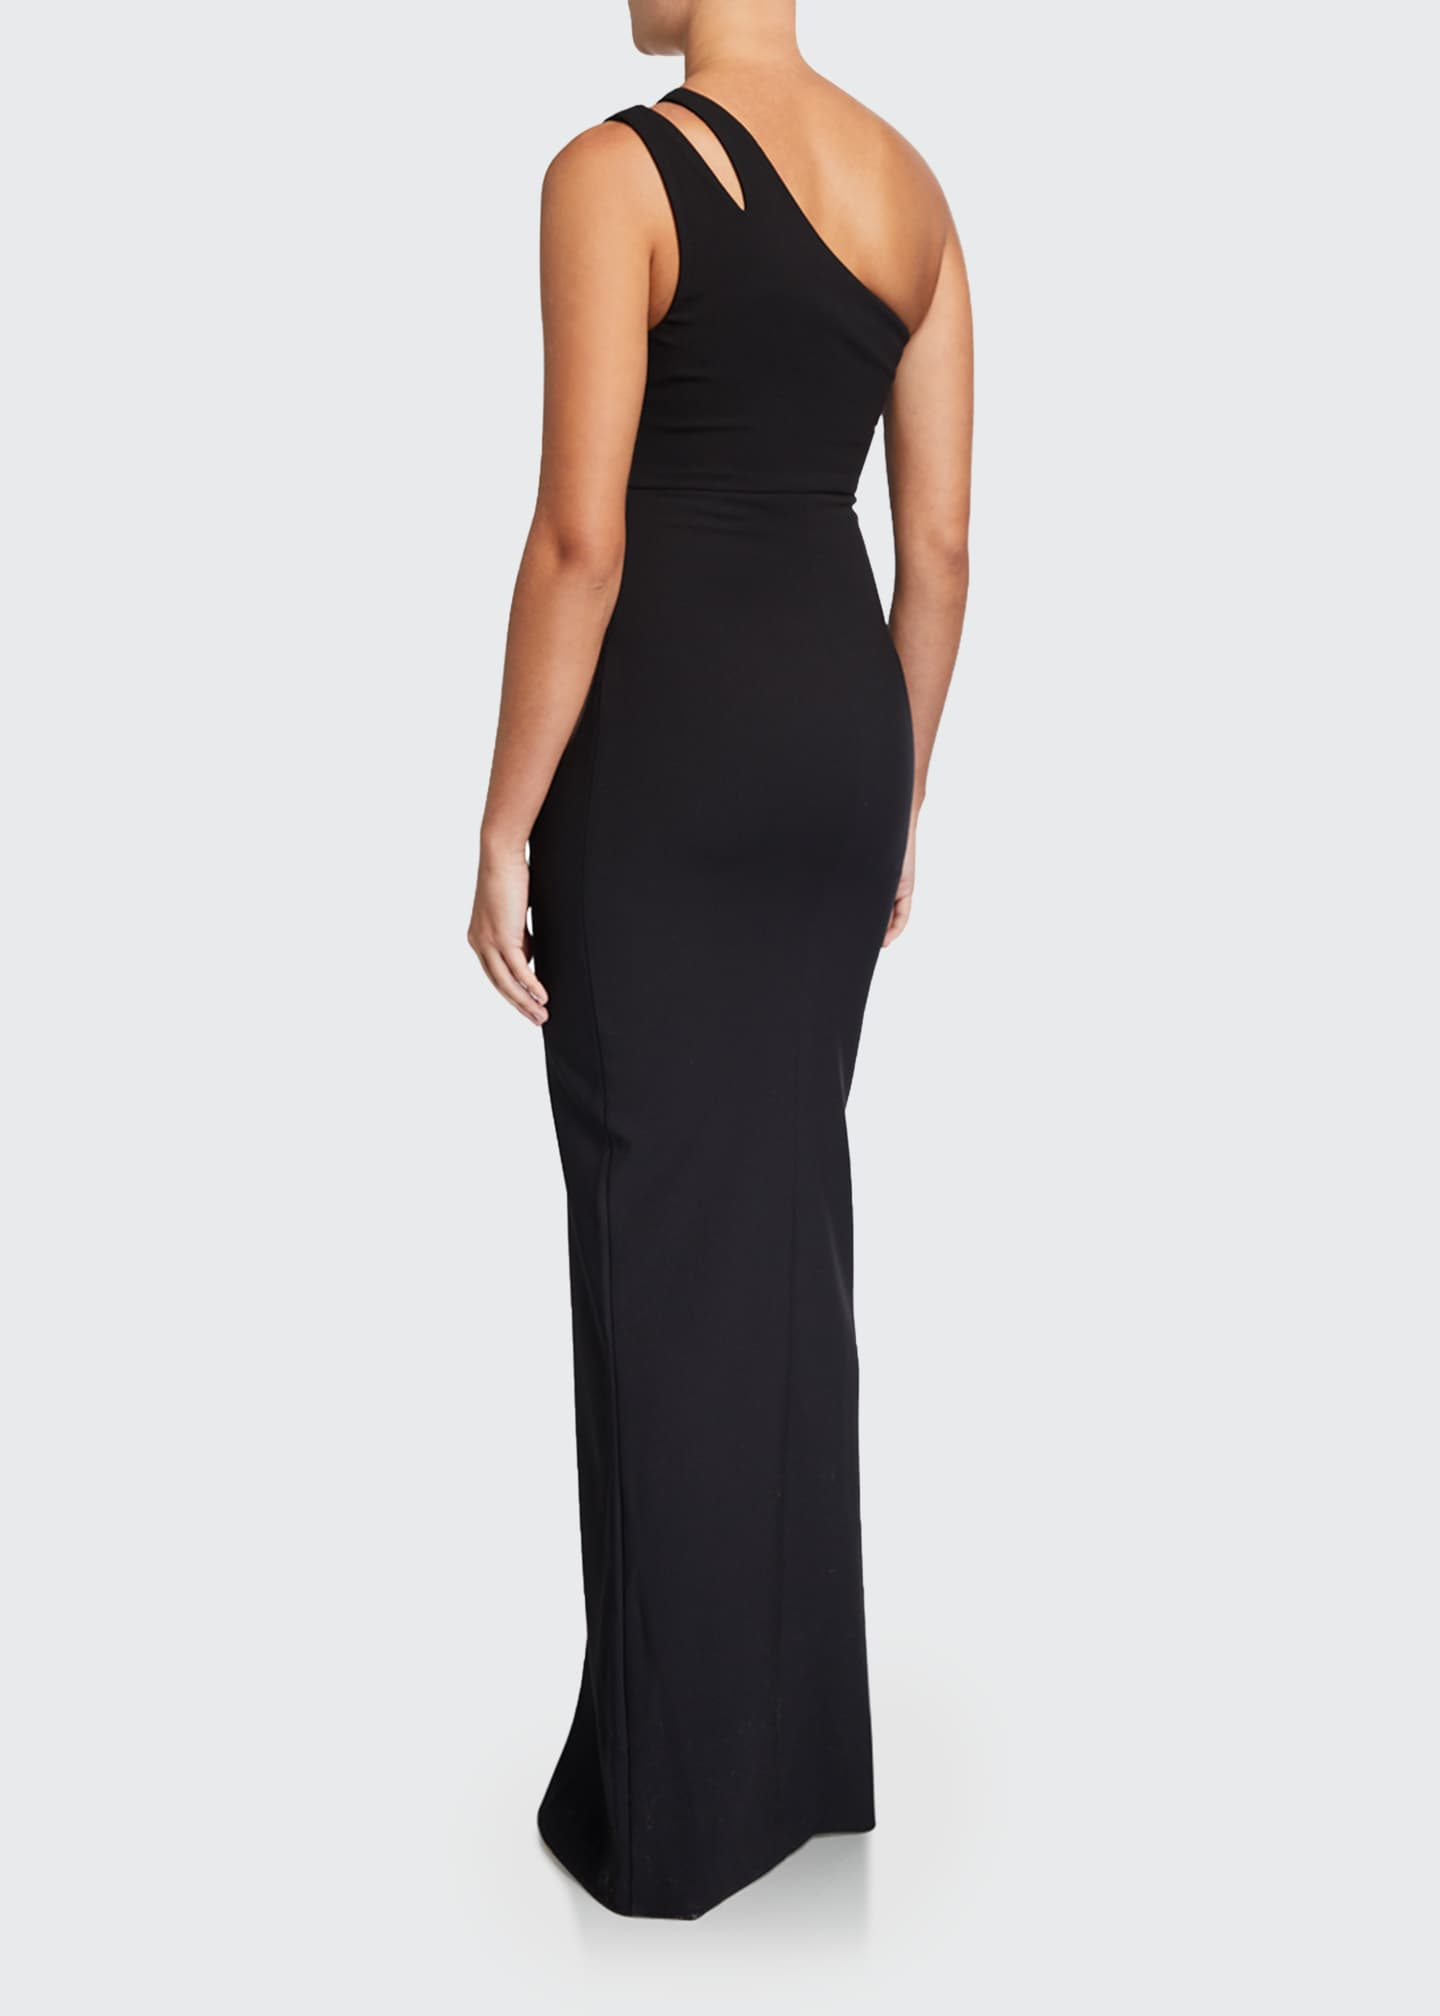 Image 2 of 2: Roxy One-Shoulder Body-Con Gown w/ Front Slit